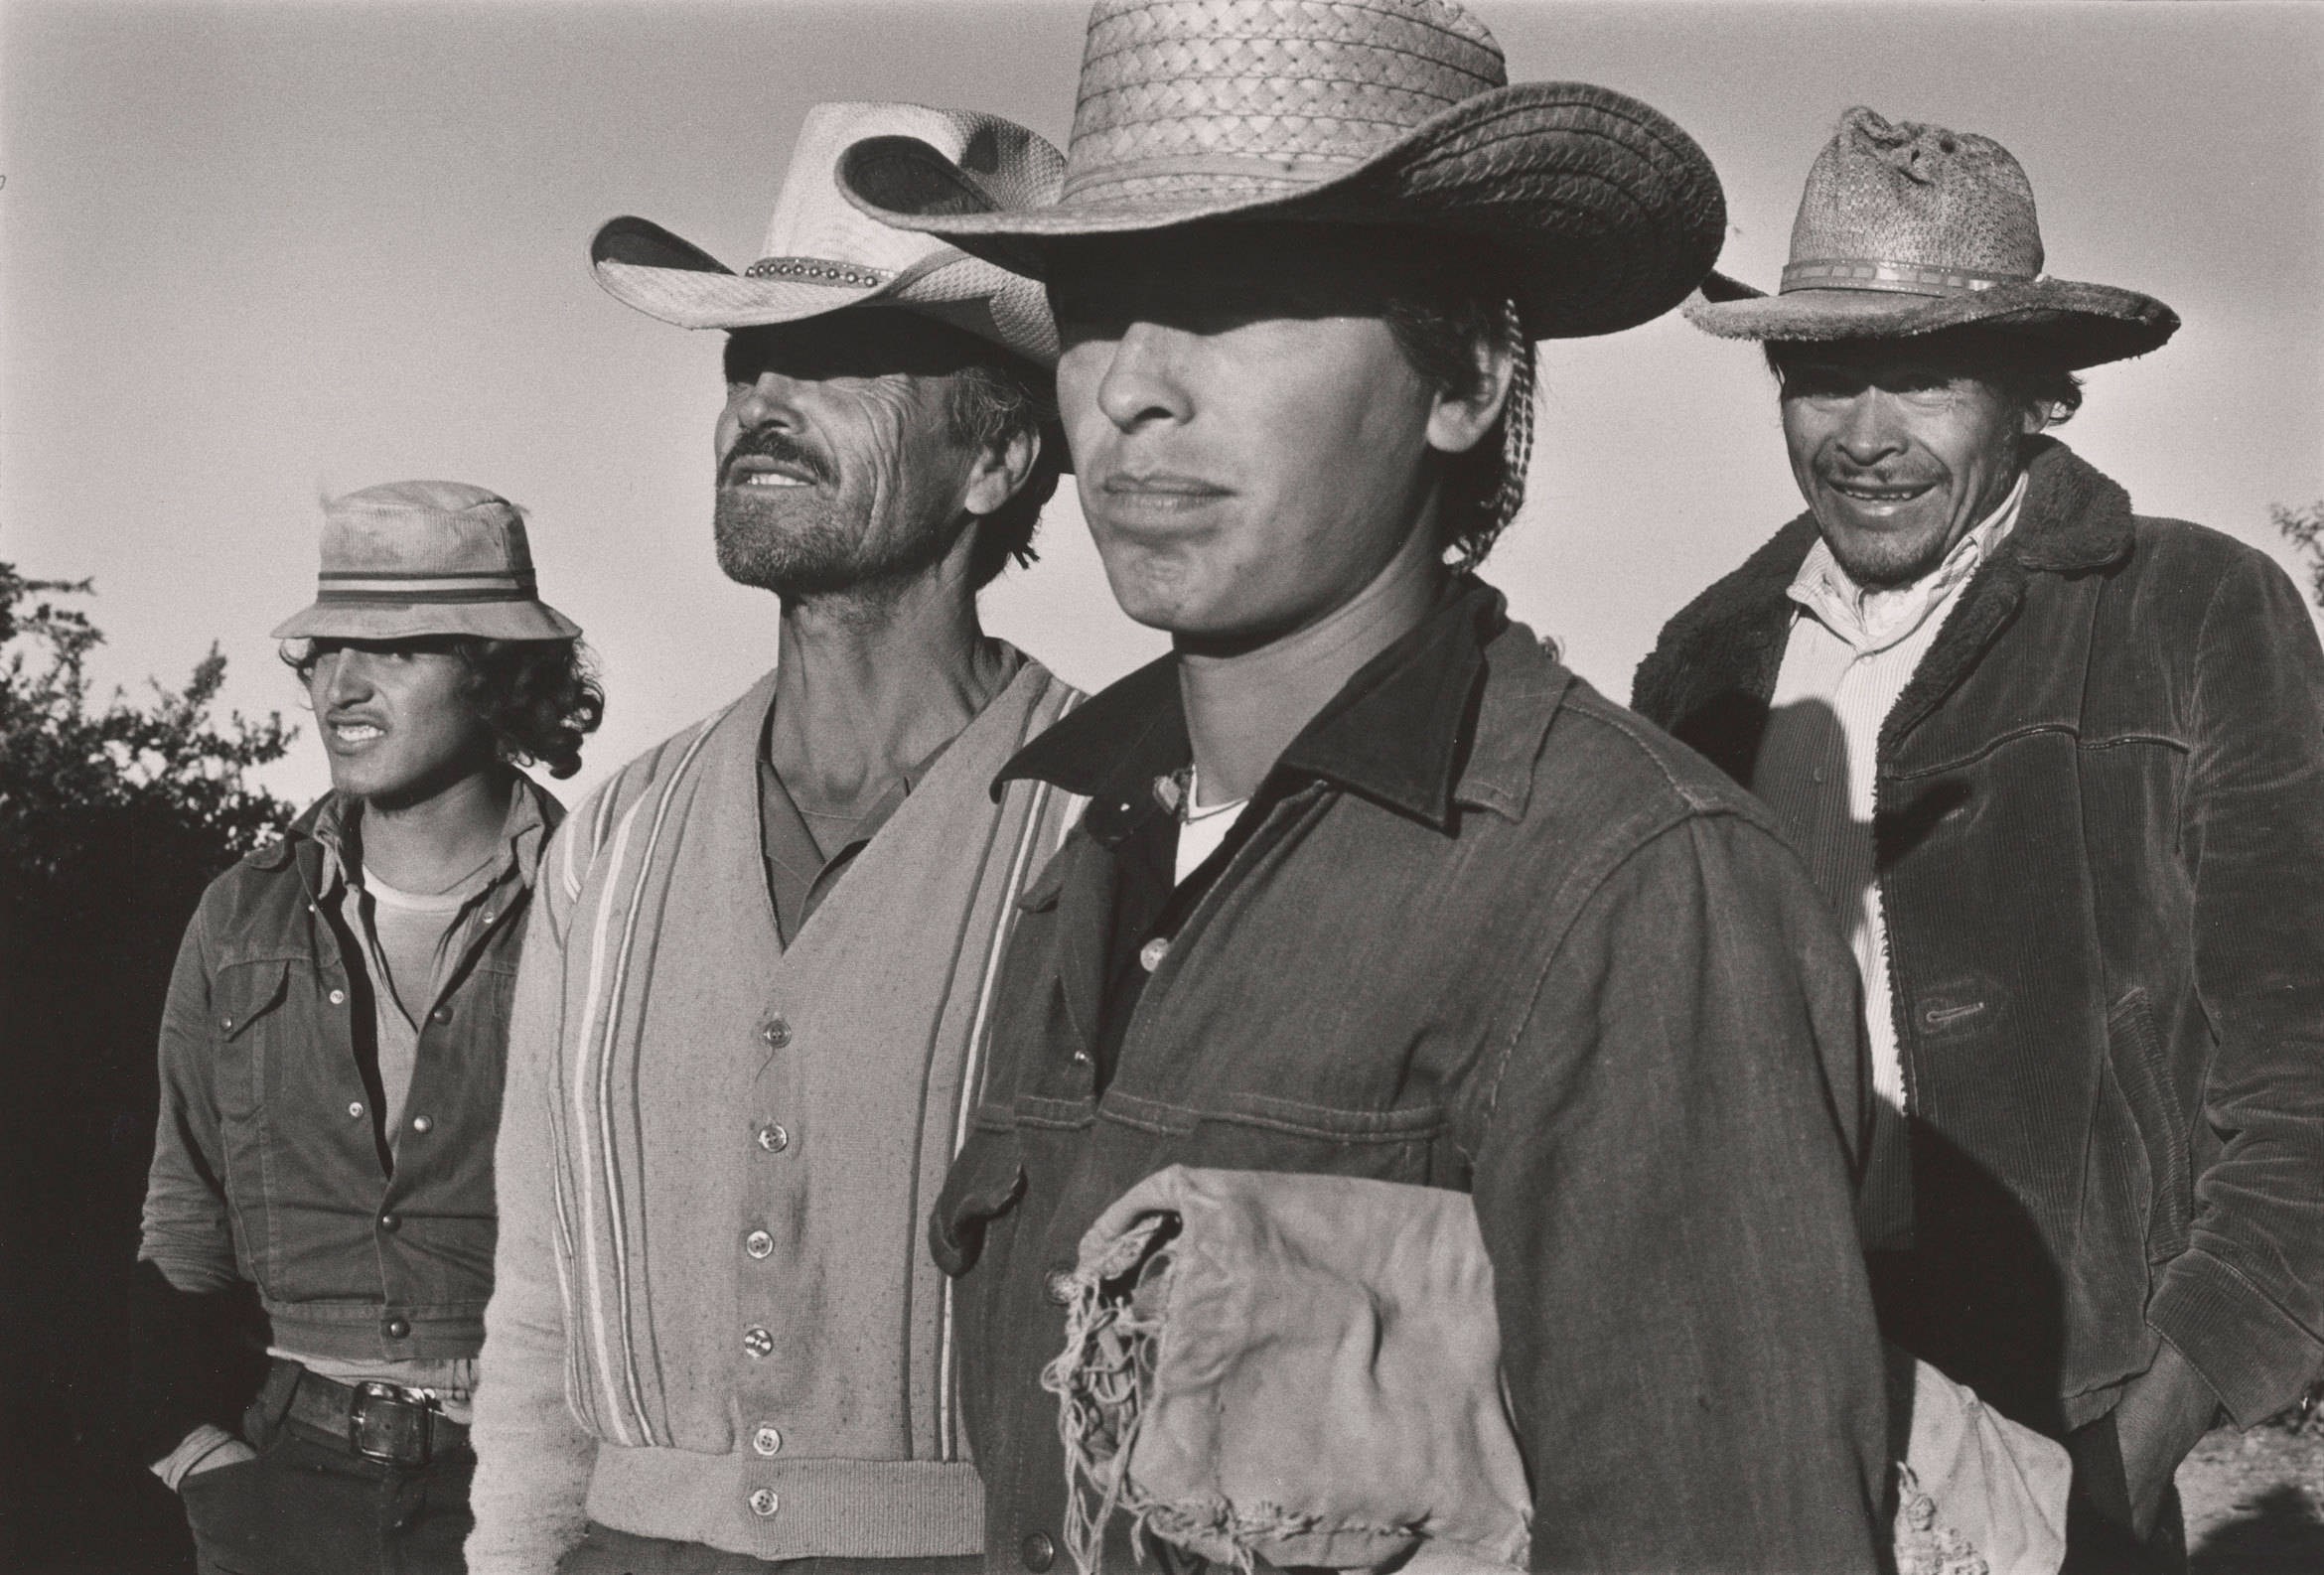 Danny Lyon: Message to the Futue - Must-See Photo Exhibitions Spring/Summer 2016